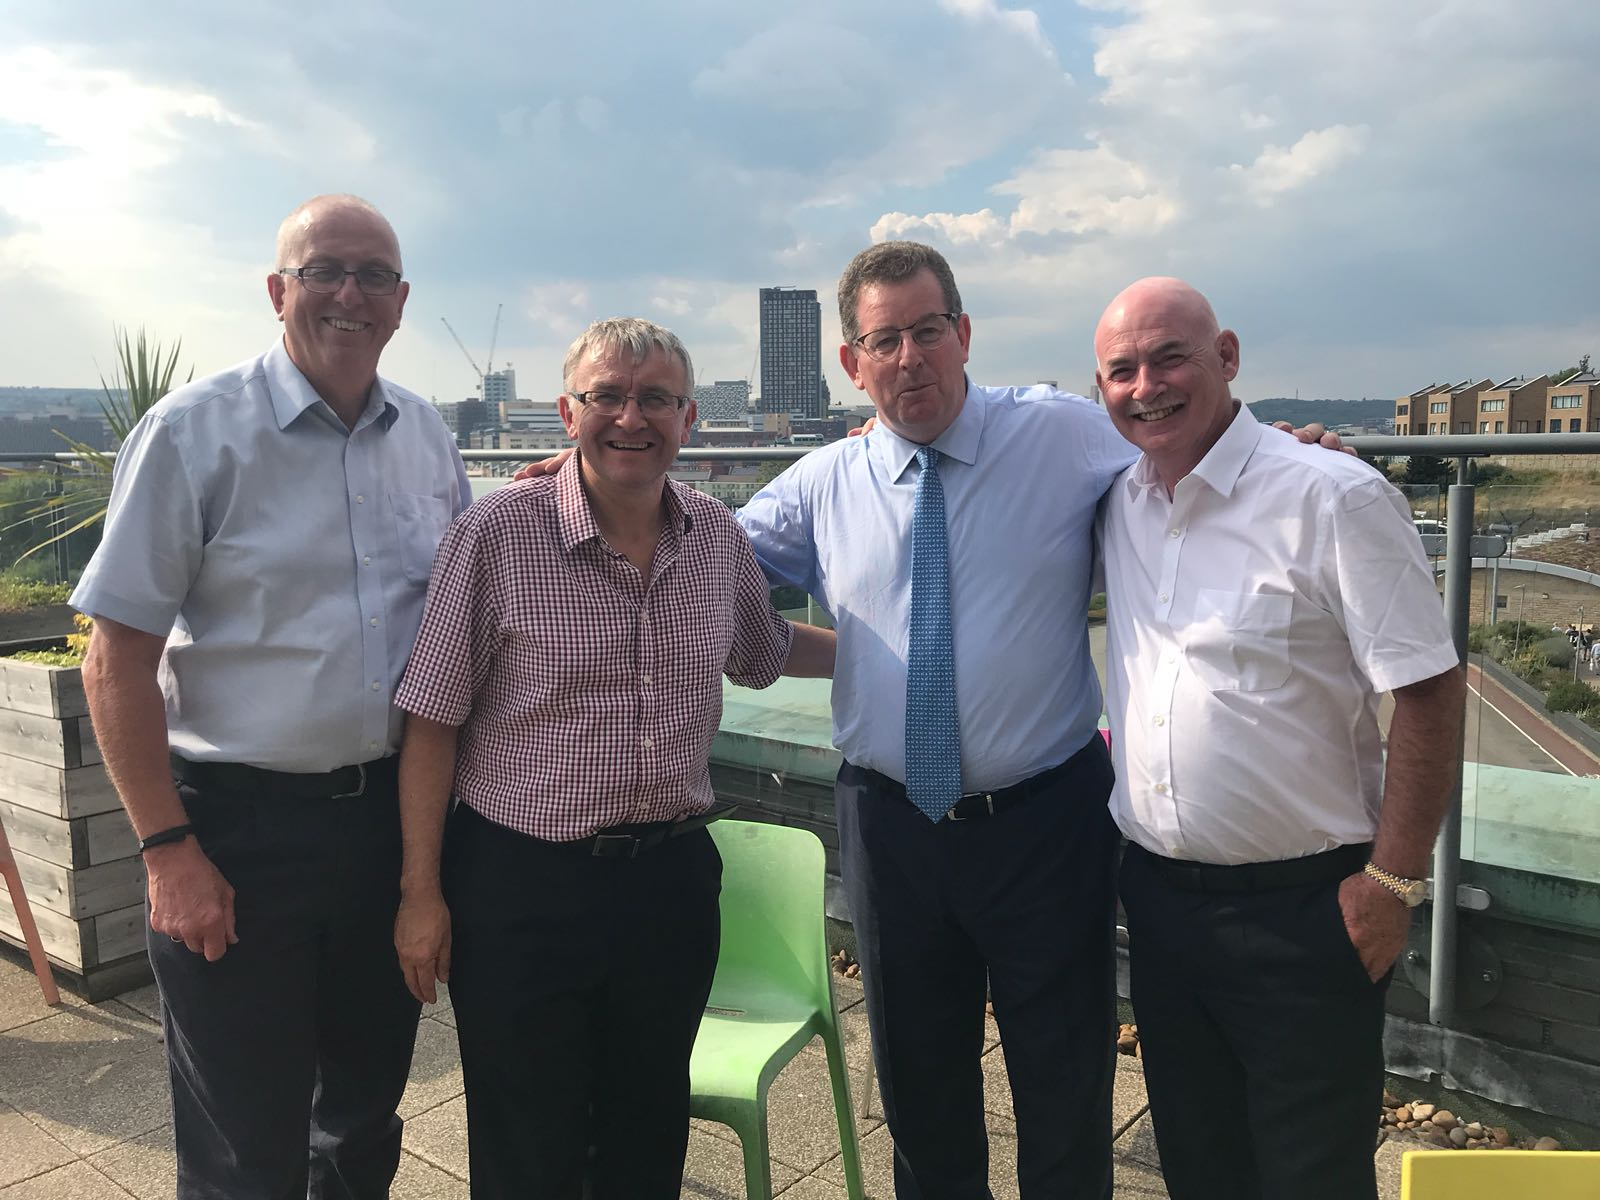 Pictured above is our Founder, George McIvor (right), alongside The Full Range Brand Ambassador, Andrew Bennett MBE (left) as well as John Williams and David McKown.